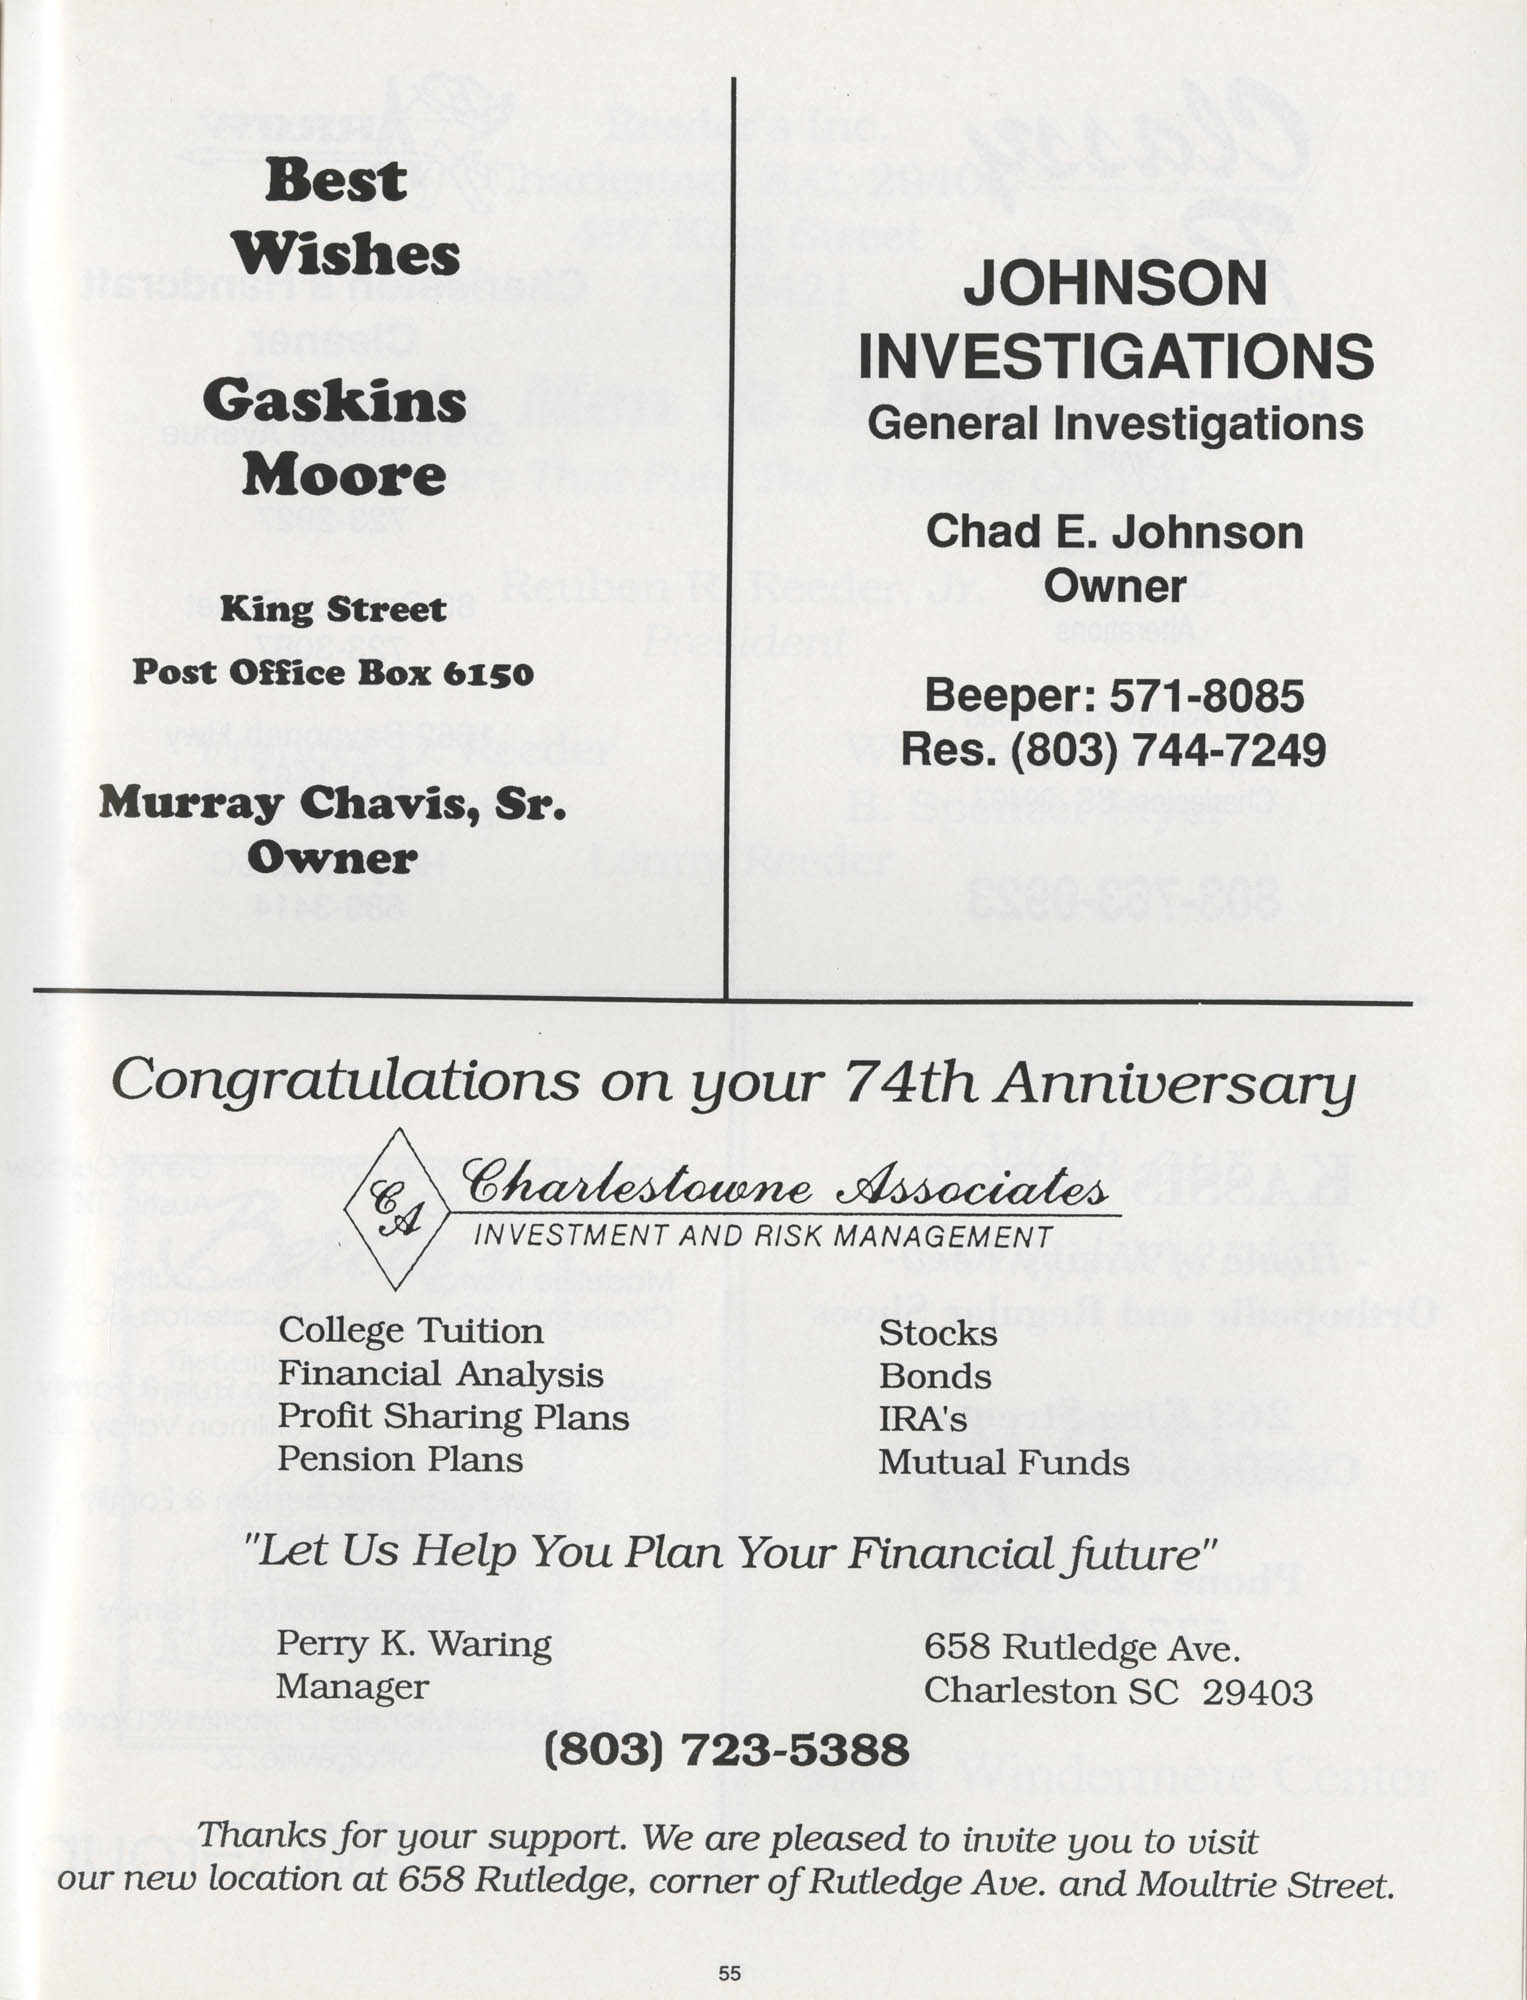 1990 NAACP Freedom Fund Magazine, Charleston Branch of the NAACP, 74th Anniversary, Page 55